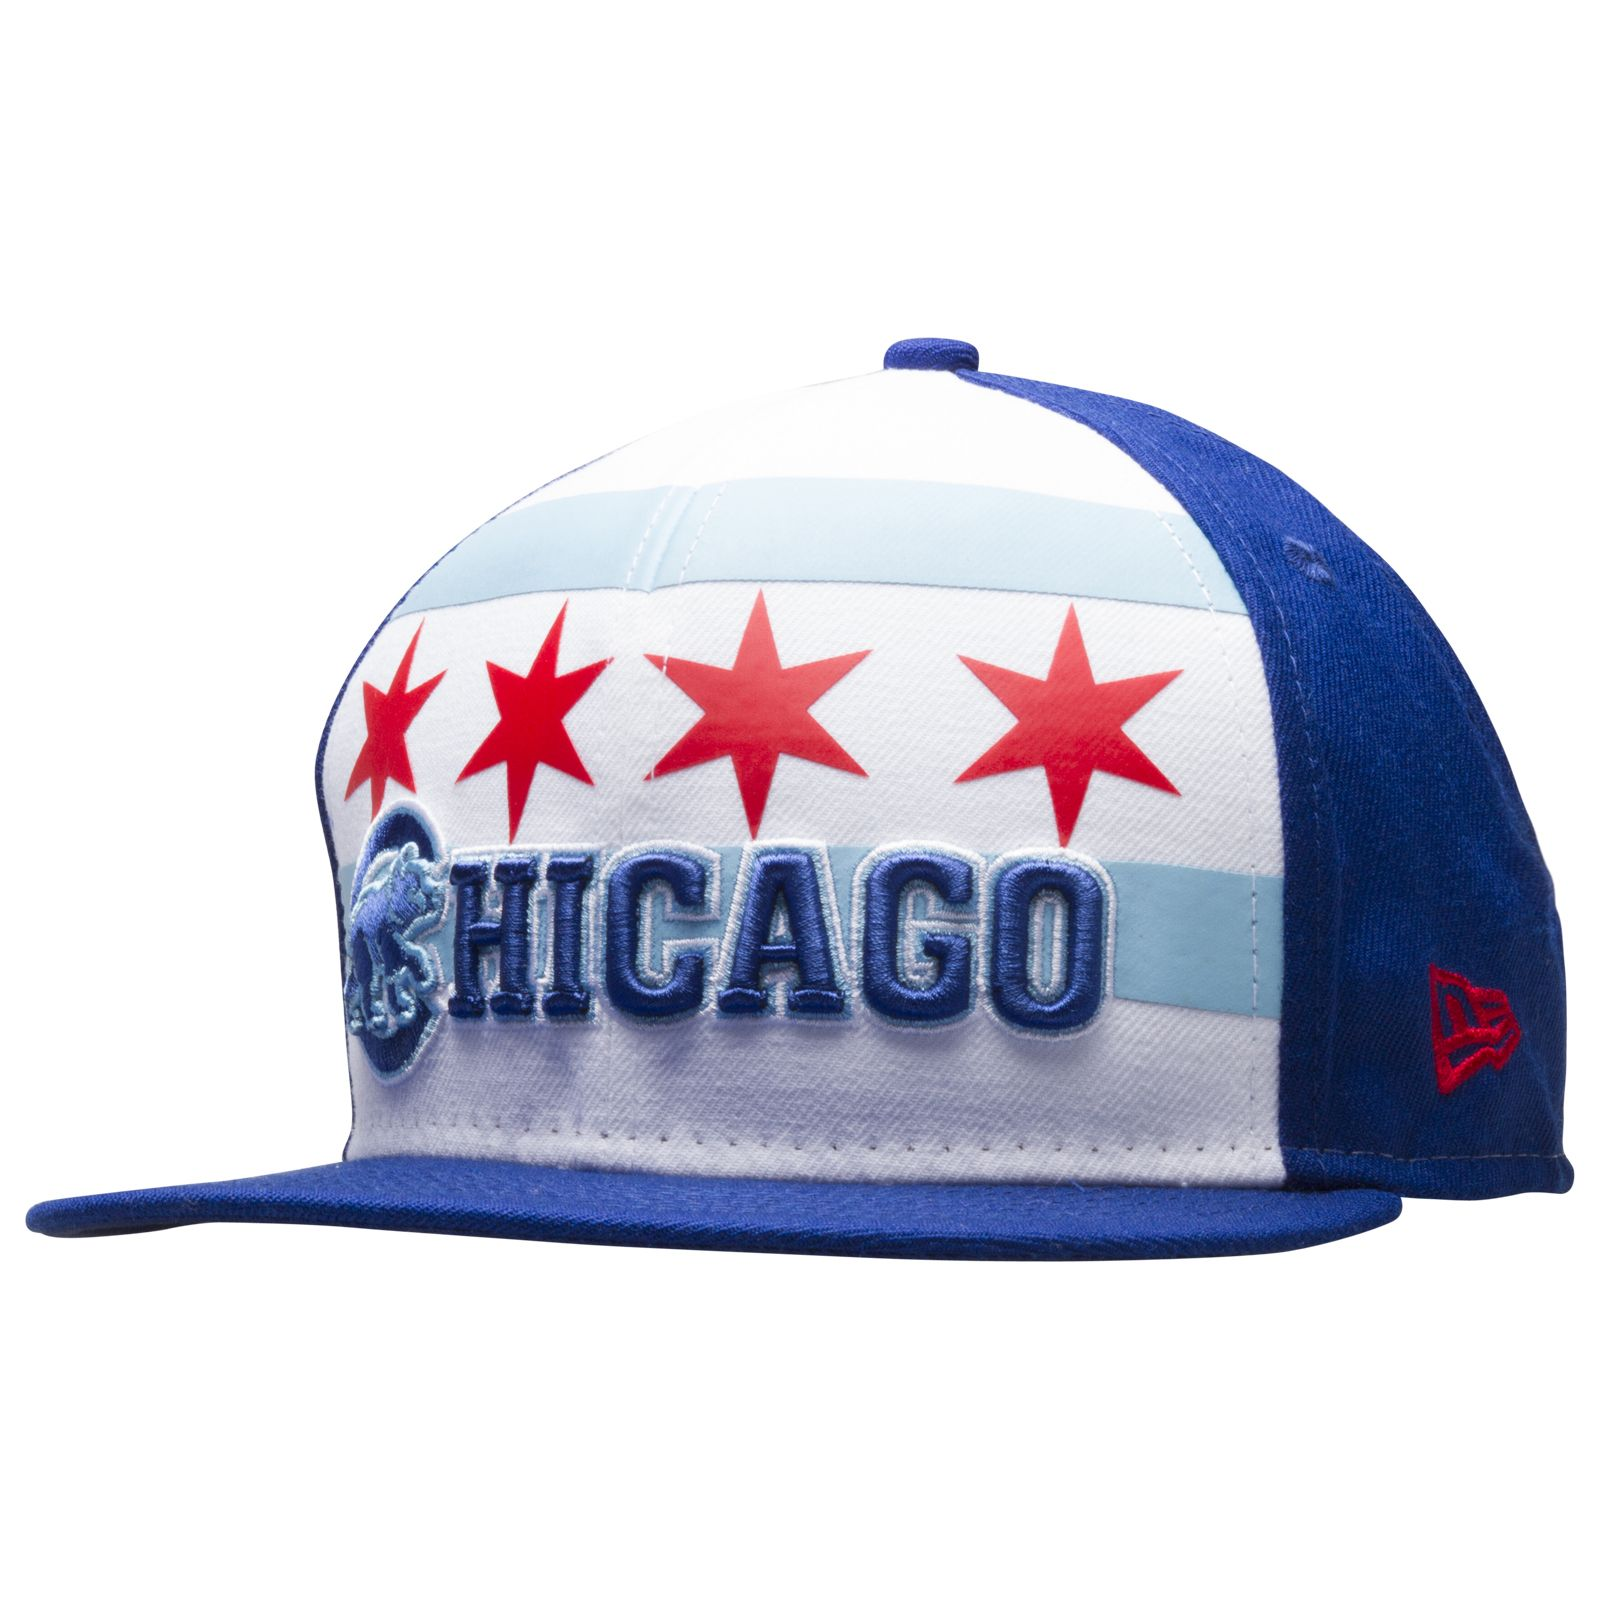 Chicago Cubs Chicago Flag Crawl Bear Snapback Hat by New Era  Chicago  Cubs   ChicagoCubs 42fe90e5f6a4